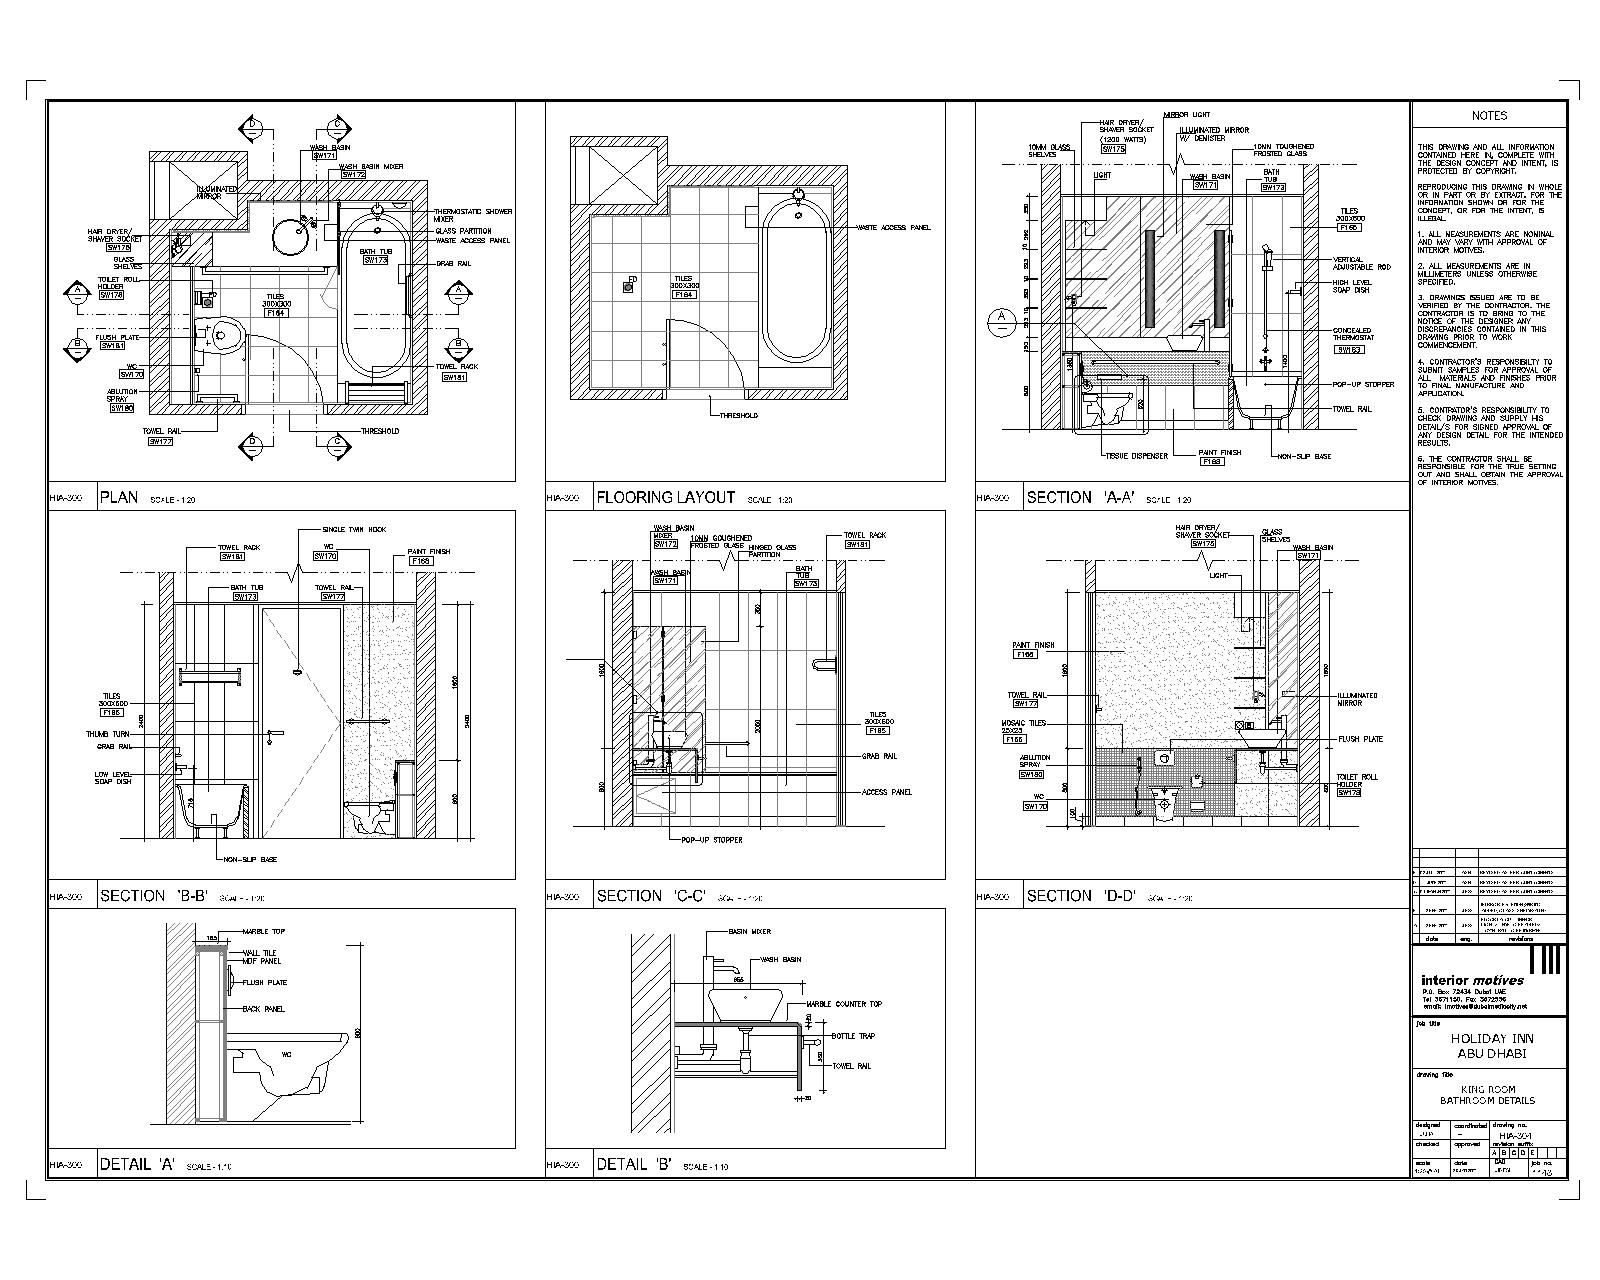 Autocad drawings detail by ashik ahammed at coroflot for Online autocad drawing